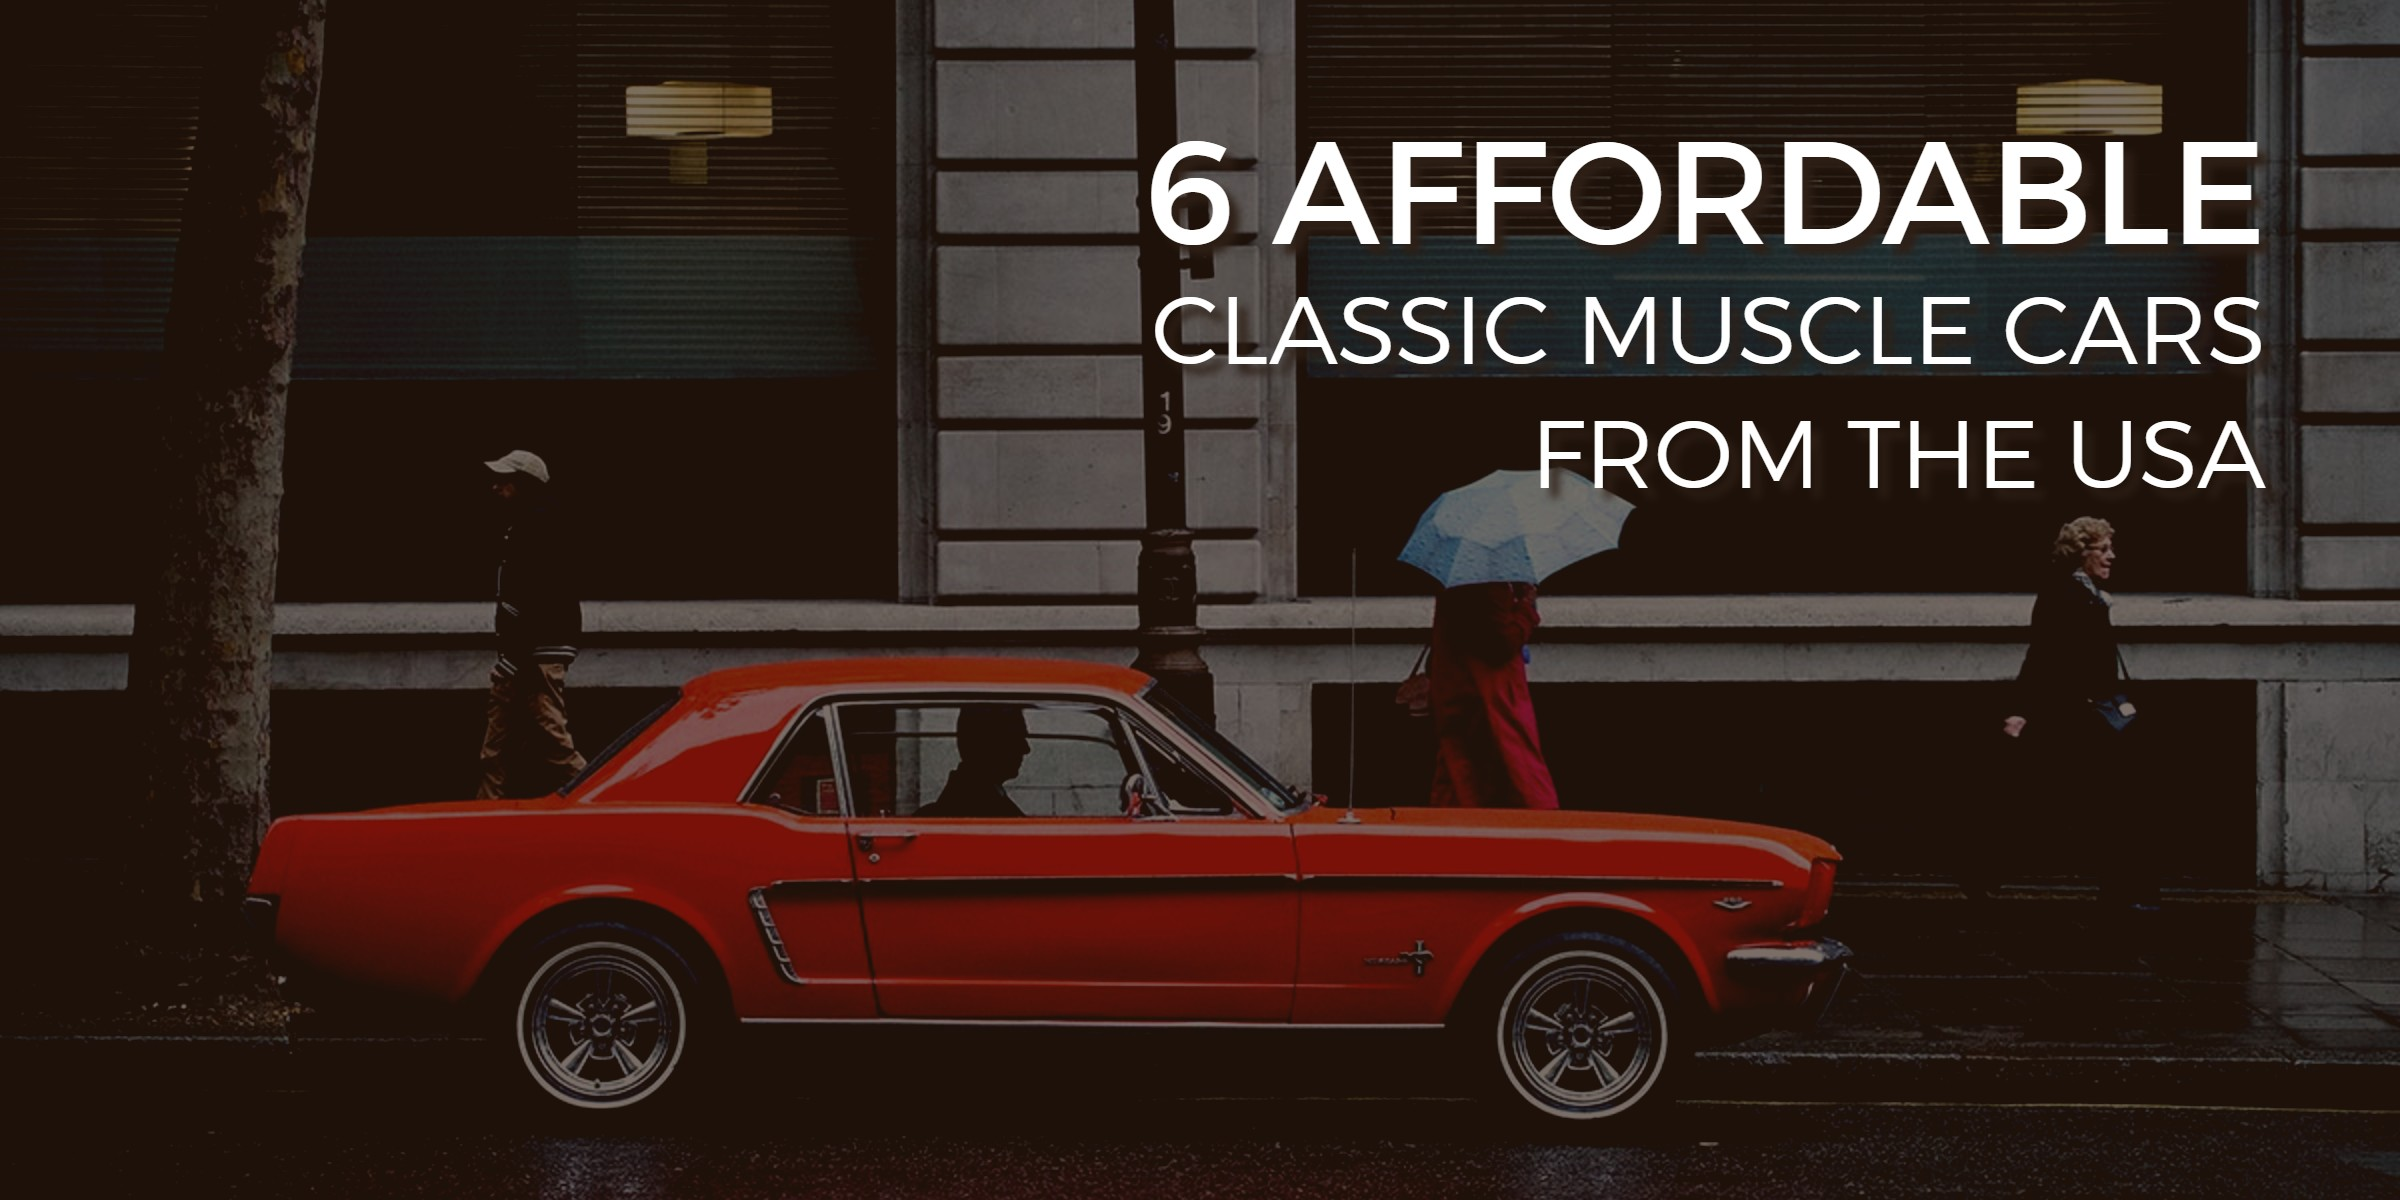 6 Affordable Classic Muscle Cars from the USA